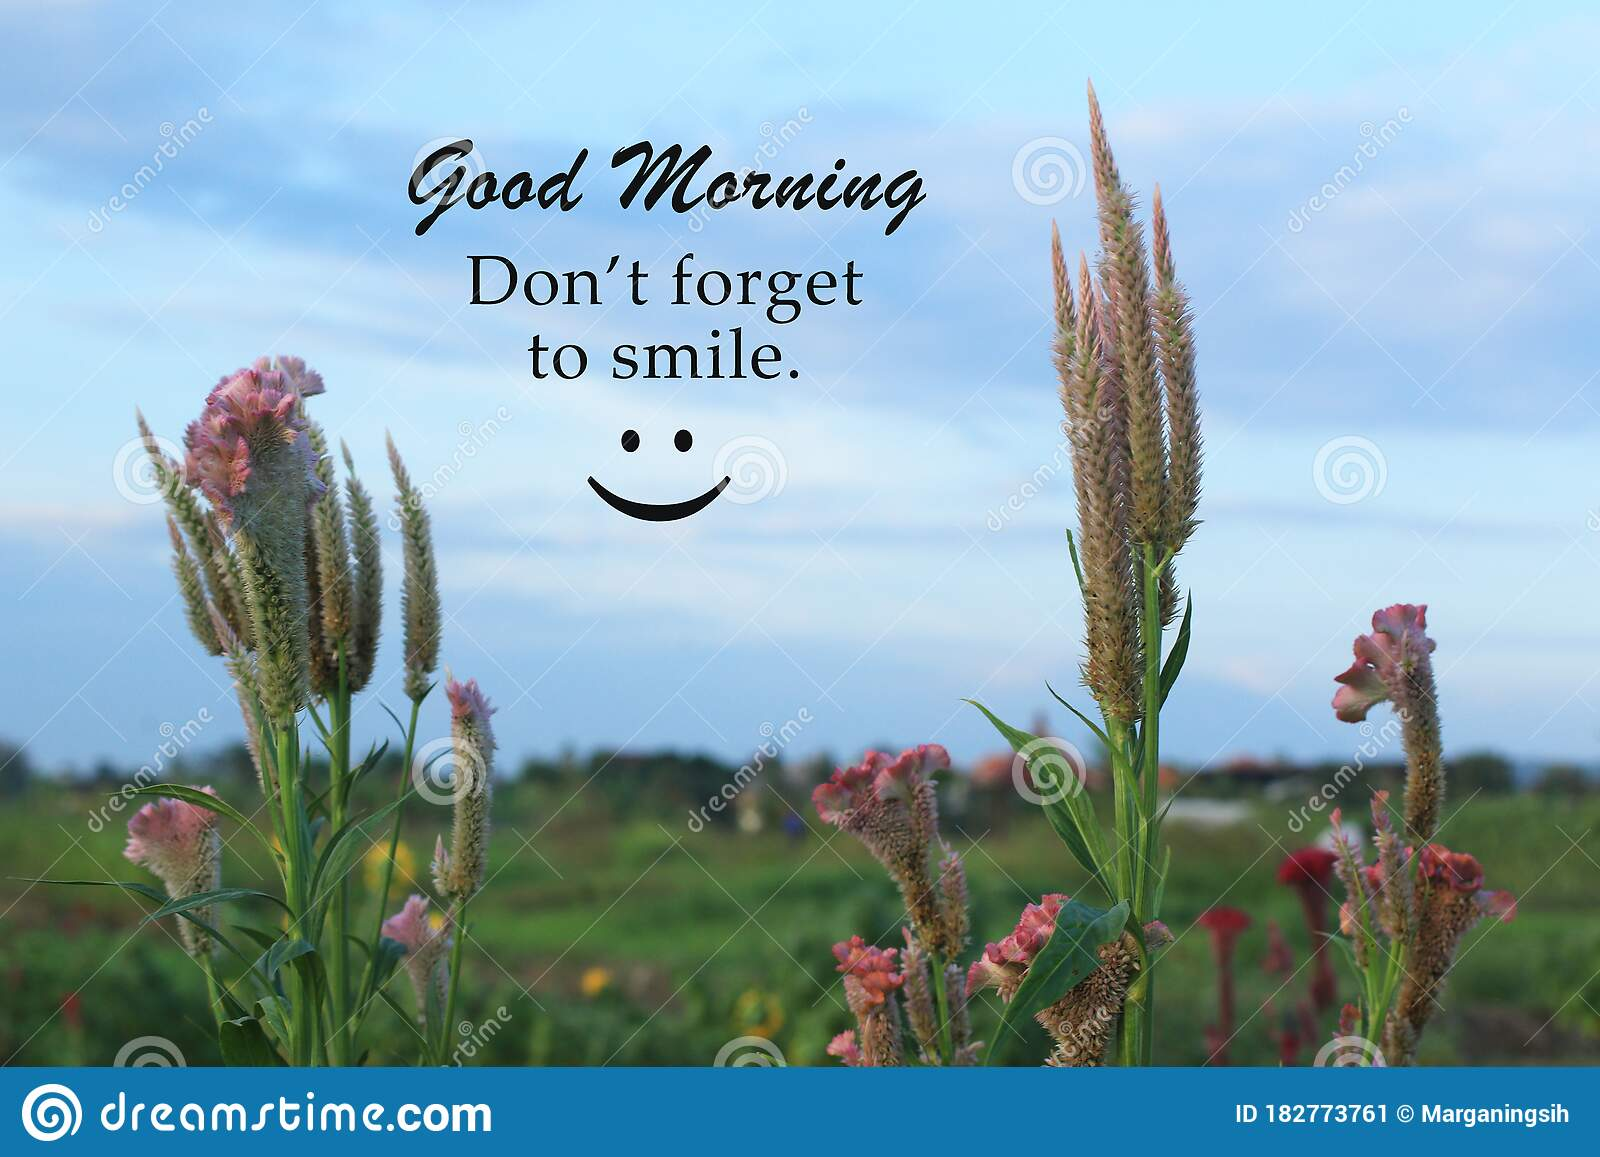 Morning Greeting Inspirational Quote Good Morning Do Not Forget To Smile Morning Card Greeting With Cockscomb Spring Flowers Stock Image Image Of Beginning Field 182773761